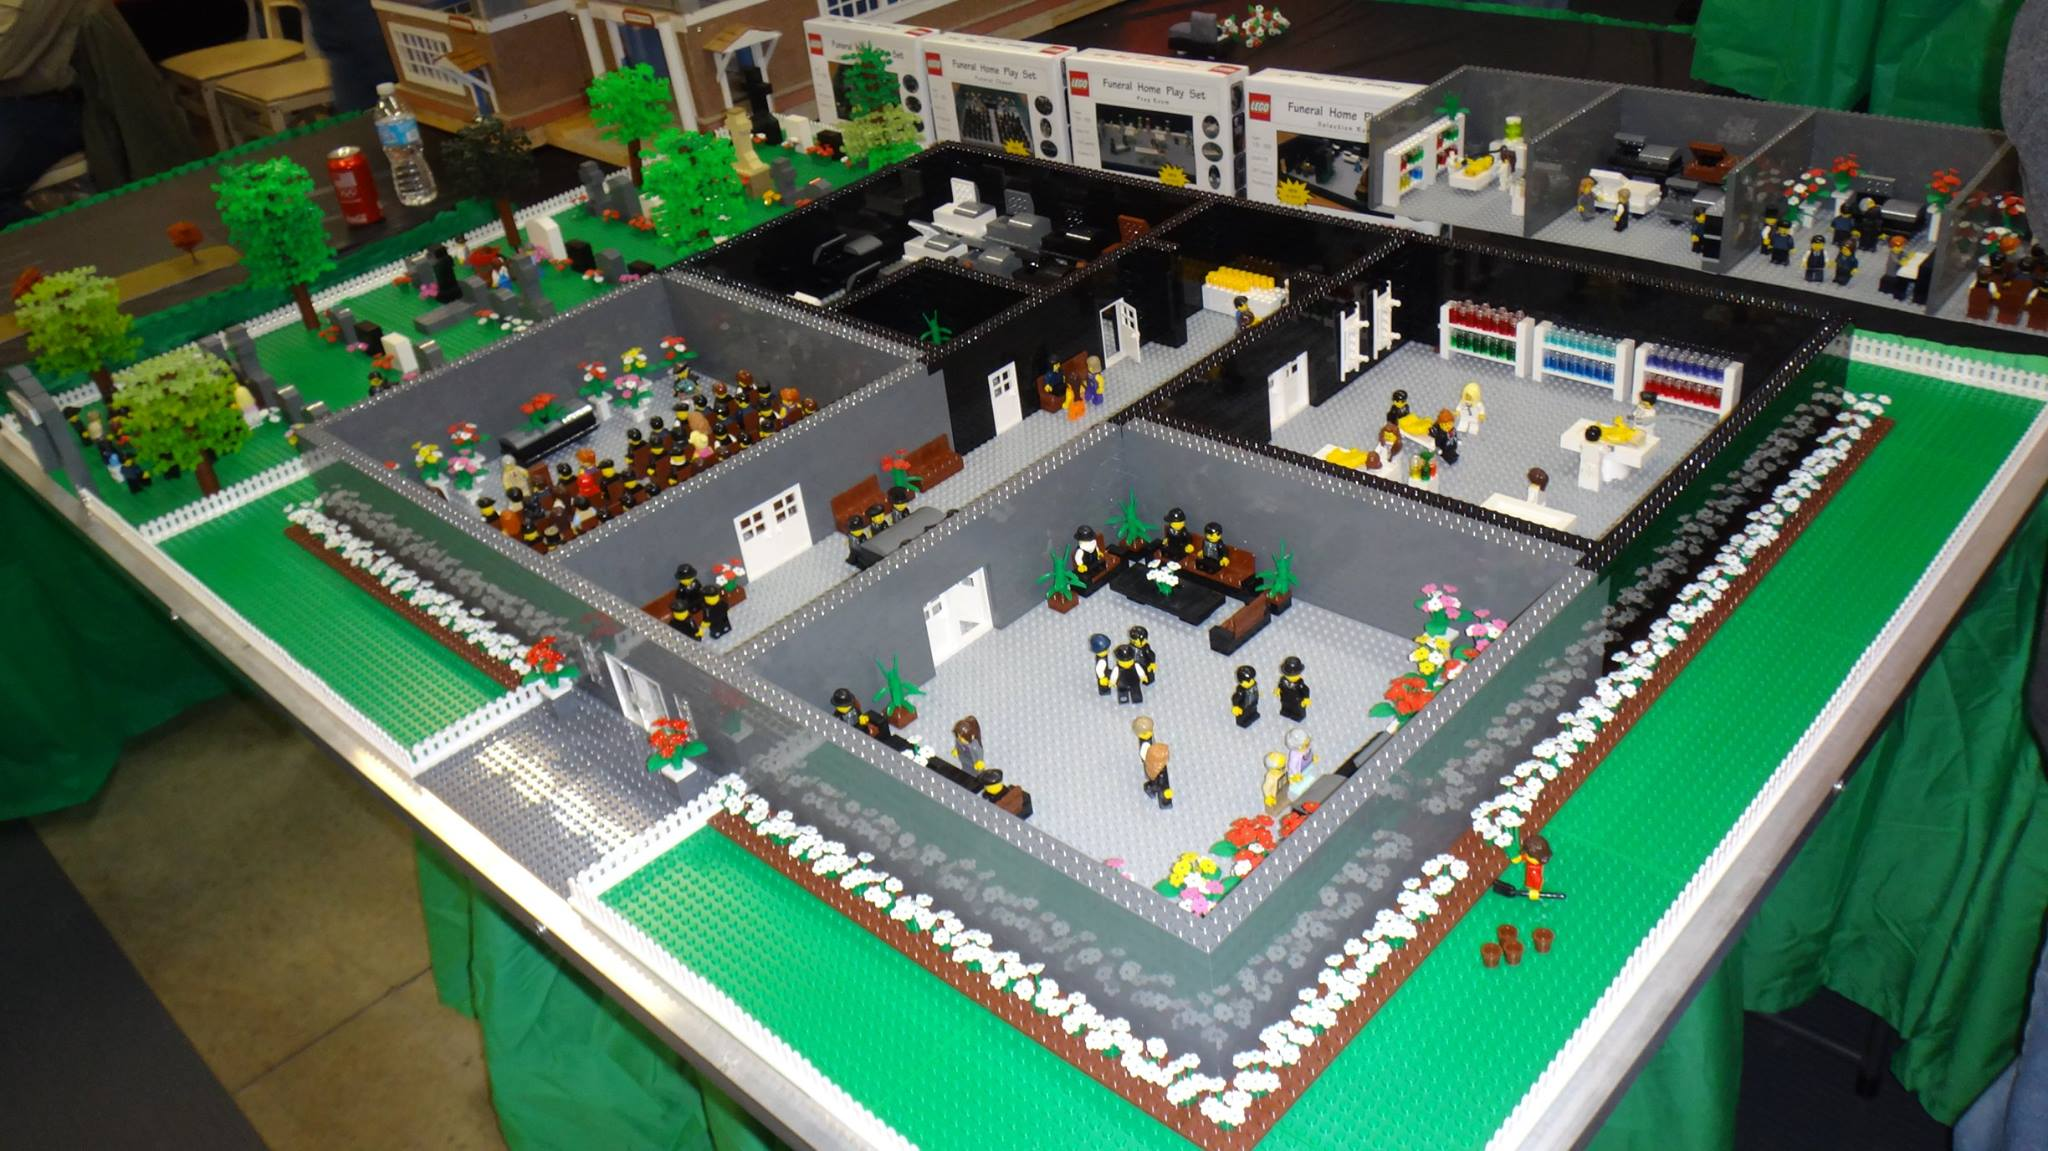 CONFESSIONS OF A FUNERAL DIRECTOR » 12 Photos of the LEGO Funeral ...